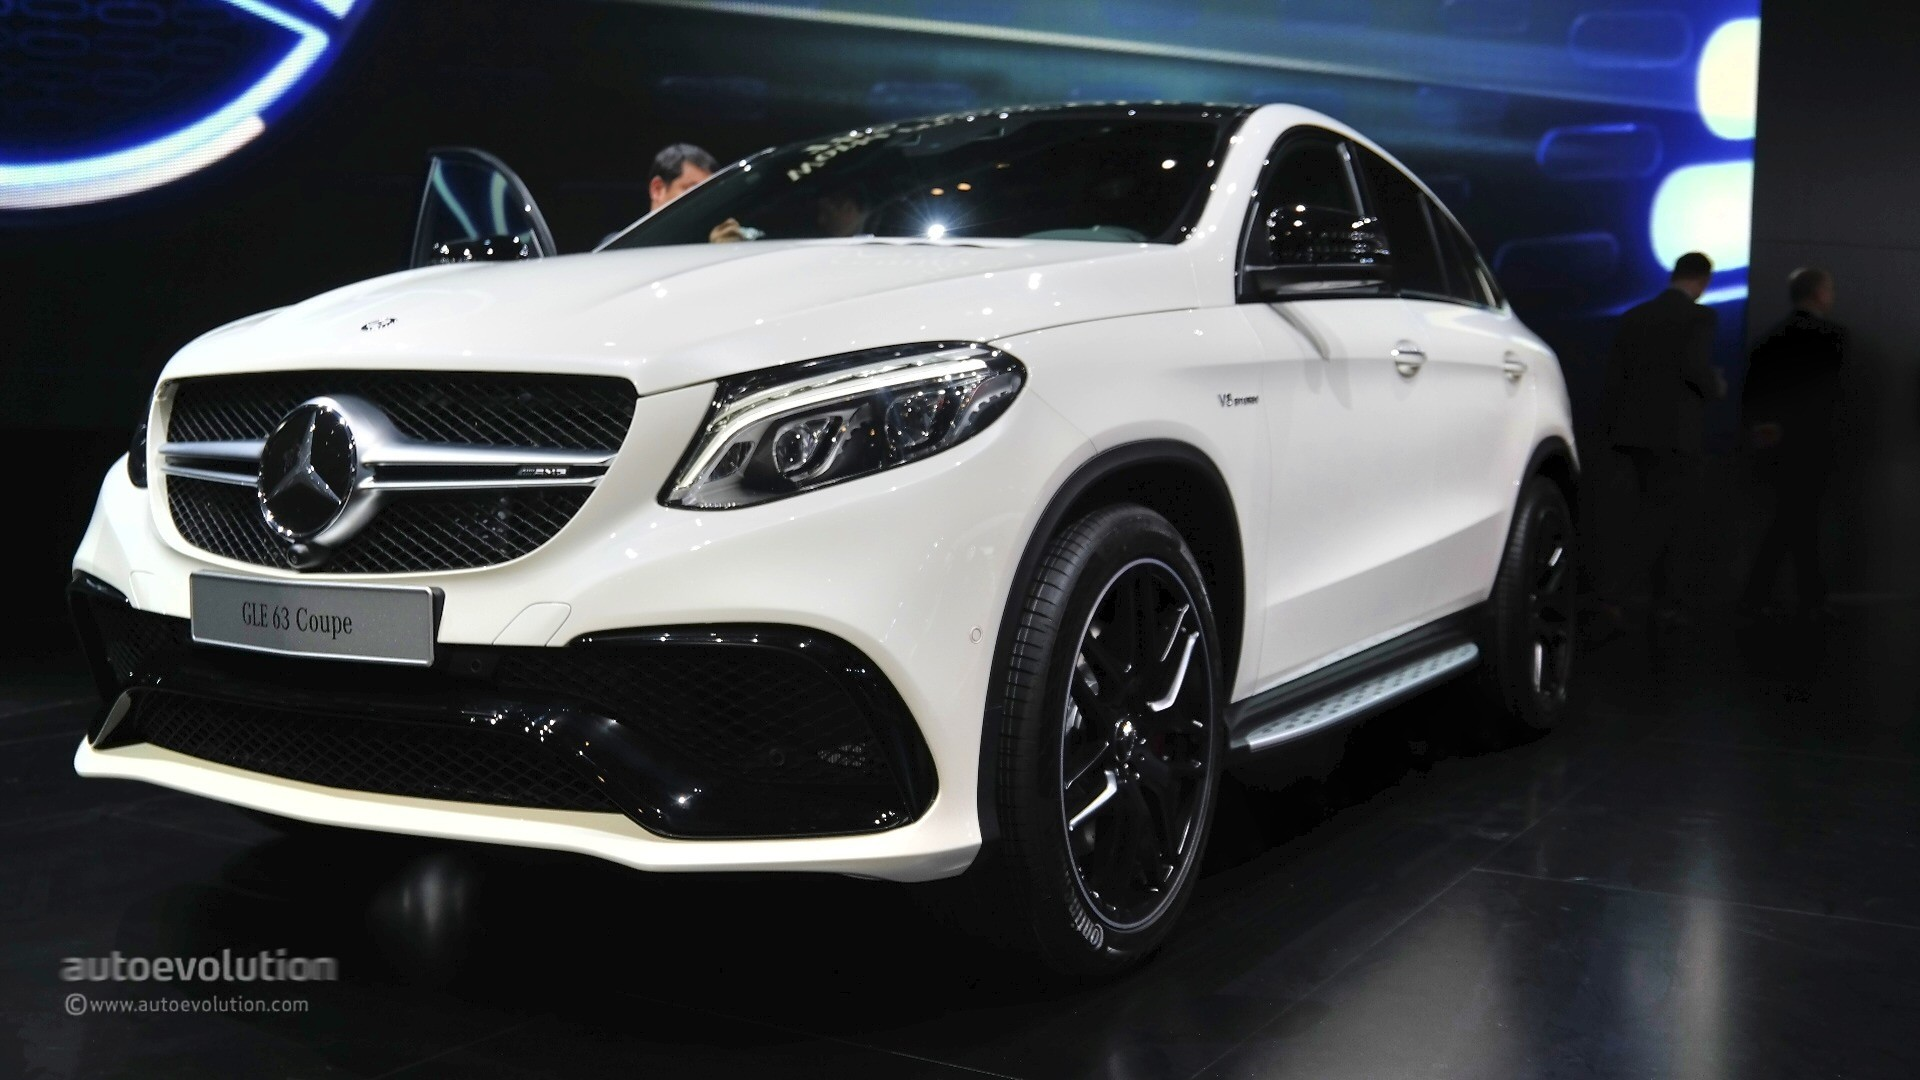 mercedes amg gle63 s coupe is too much in the flesh at the 2015 detroit auto show live photos. Black Bedroom Furniture Sets. Home Design Ideas